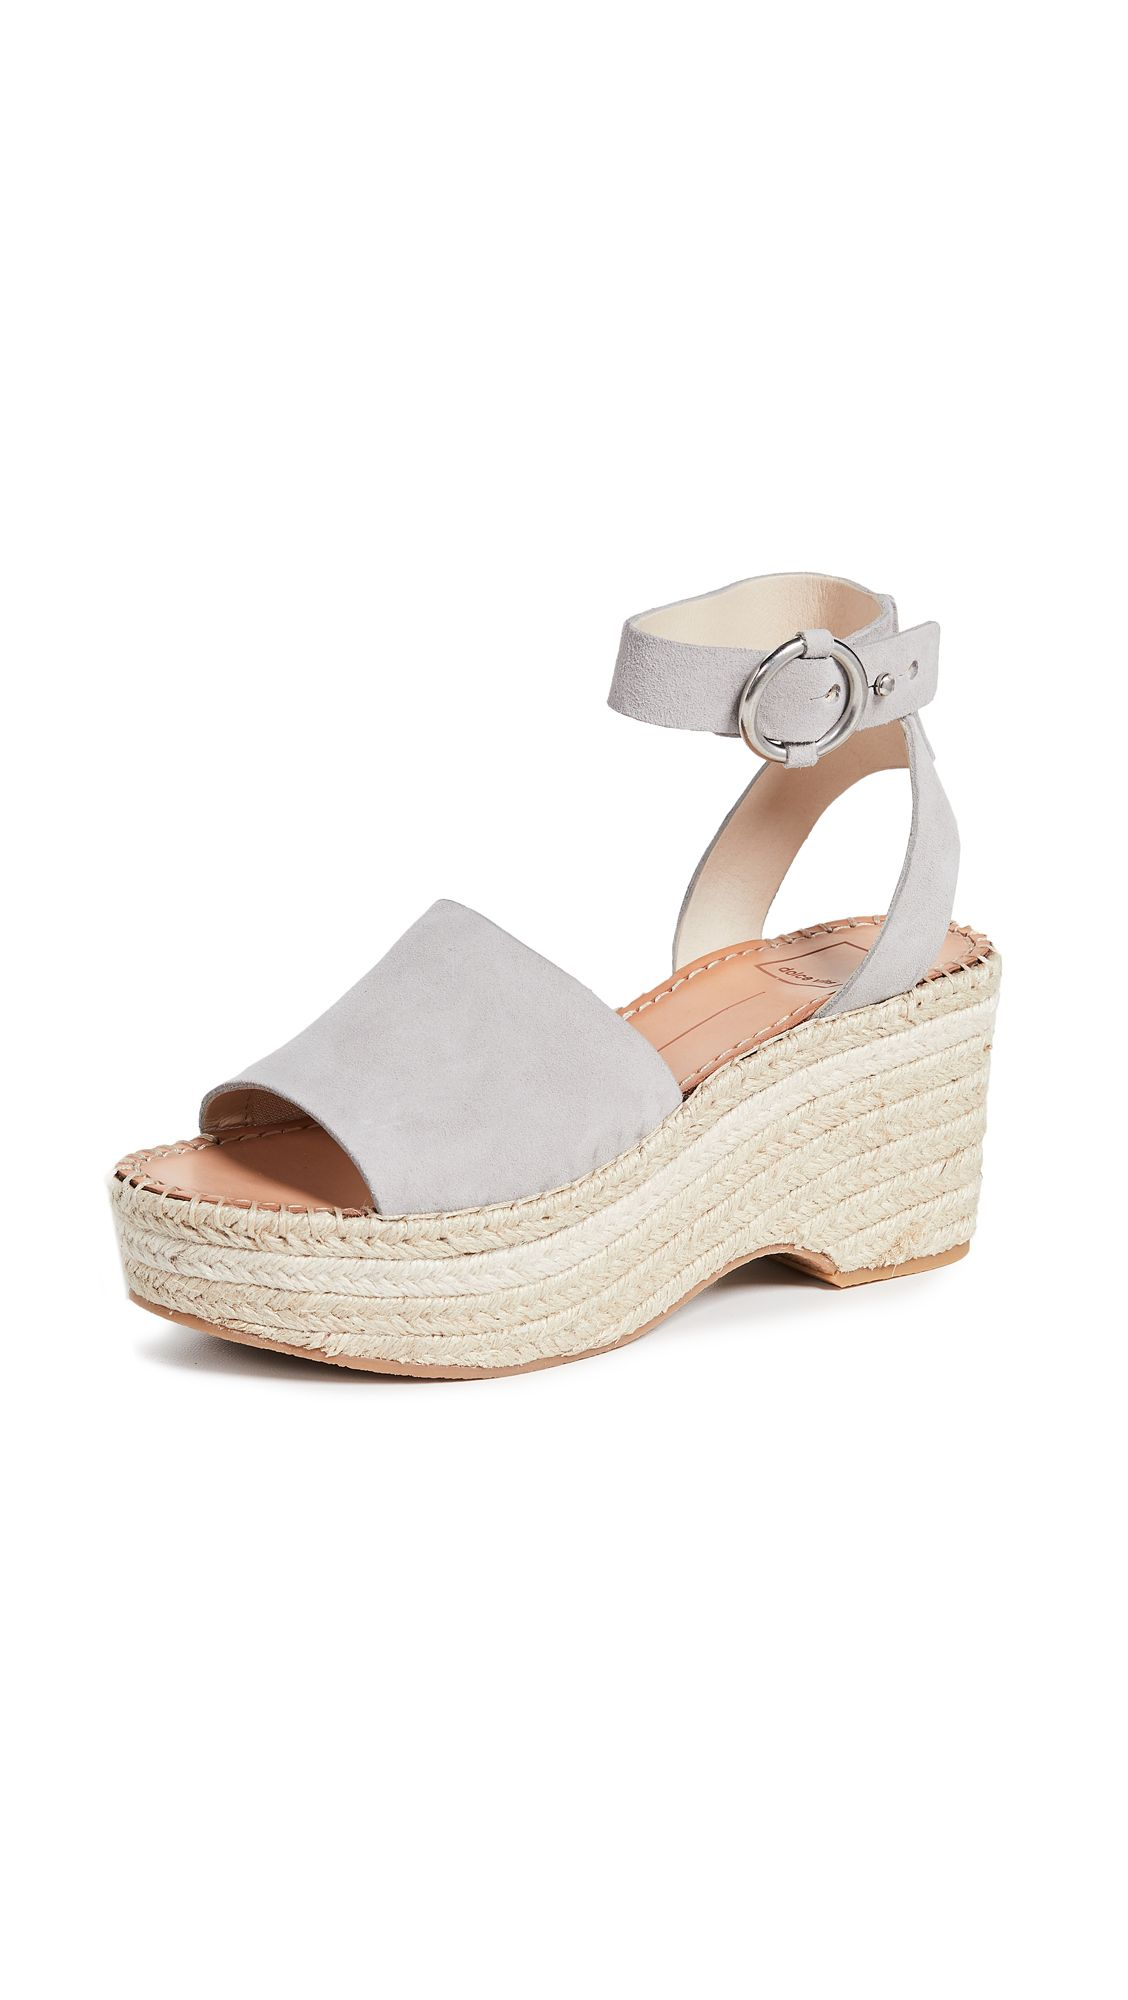 402b8b6a944c Lesly Ankle Strap Espadrilles by Dolce Vita in Grey in 2019